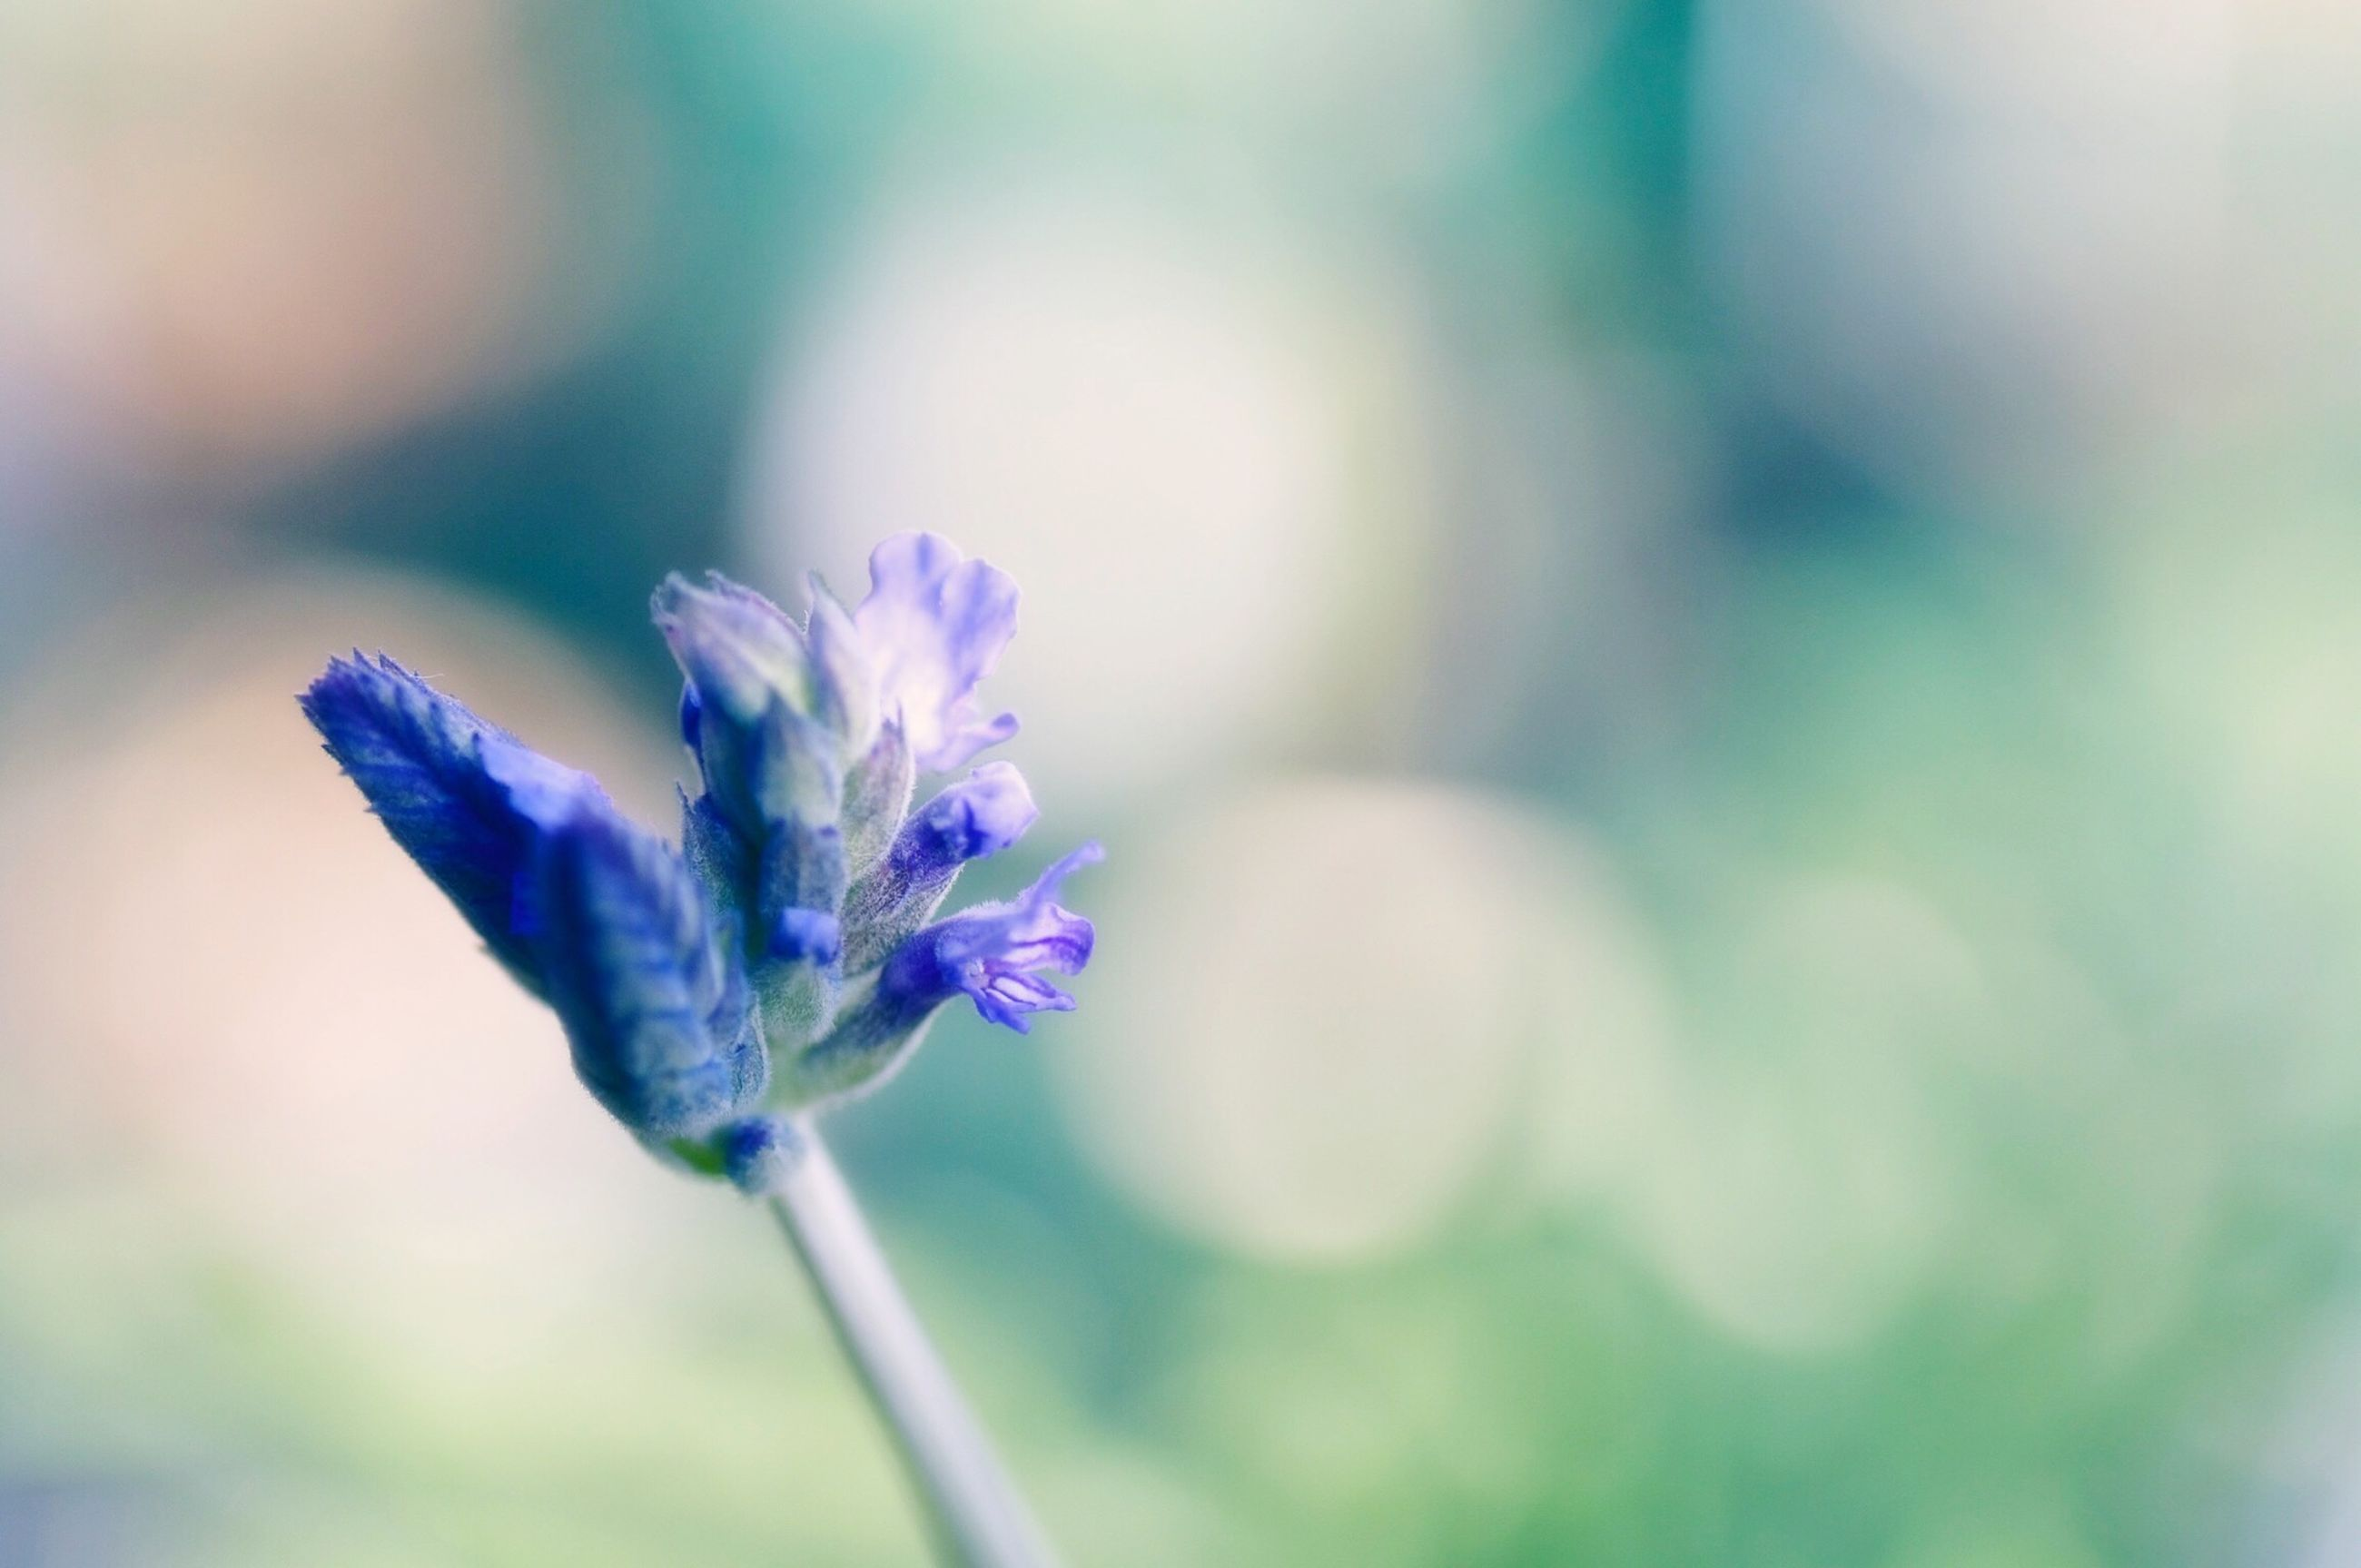 flower, purple, fragility, focus on foreground, freshness, petal, close-up, growth, flower head, beauty in nature, blue, stem, nature, plant, blooming, selective focus, single flower, in bloom, day, outdoors